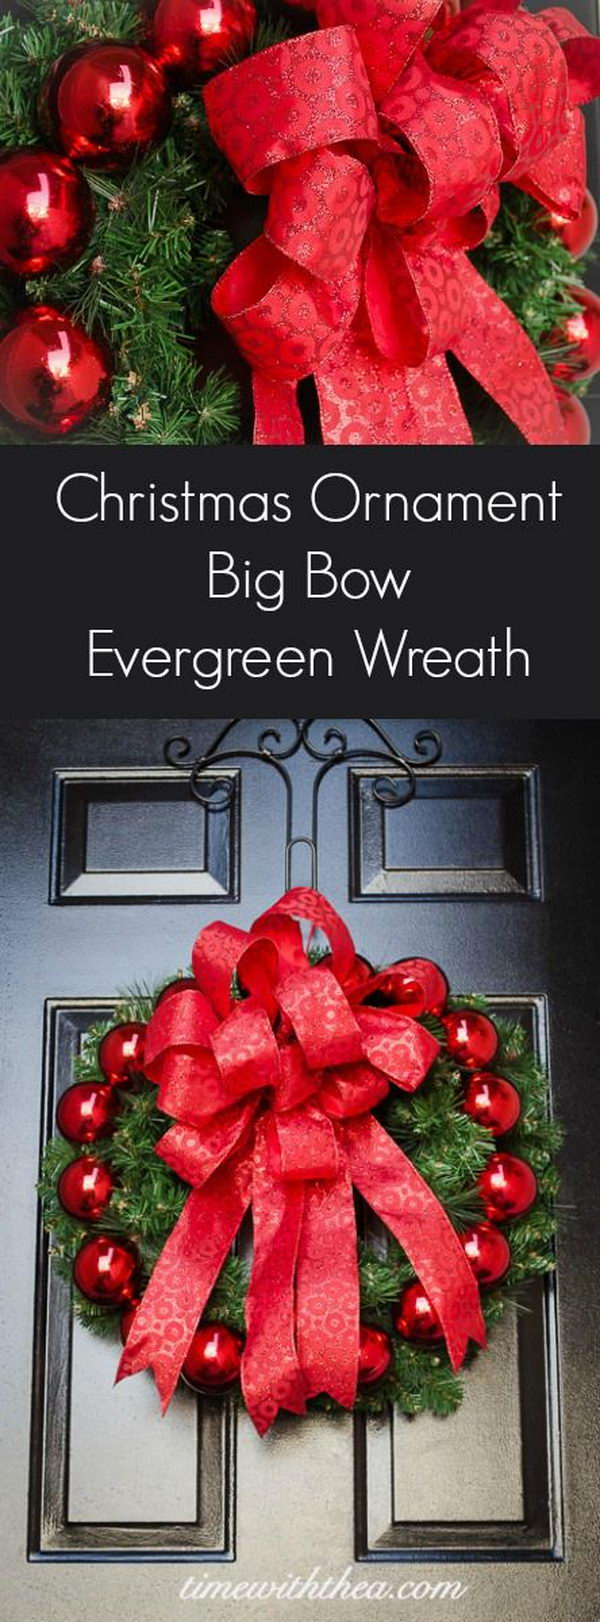 DIY Christmas Ornament Big Bow Evergreen Wreath